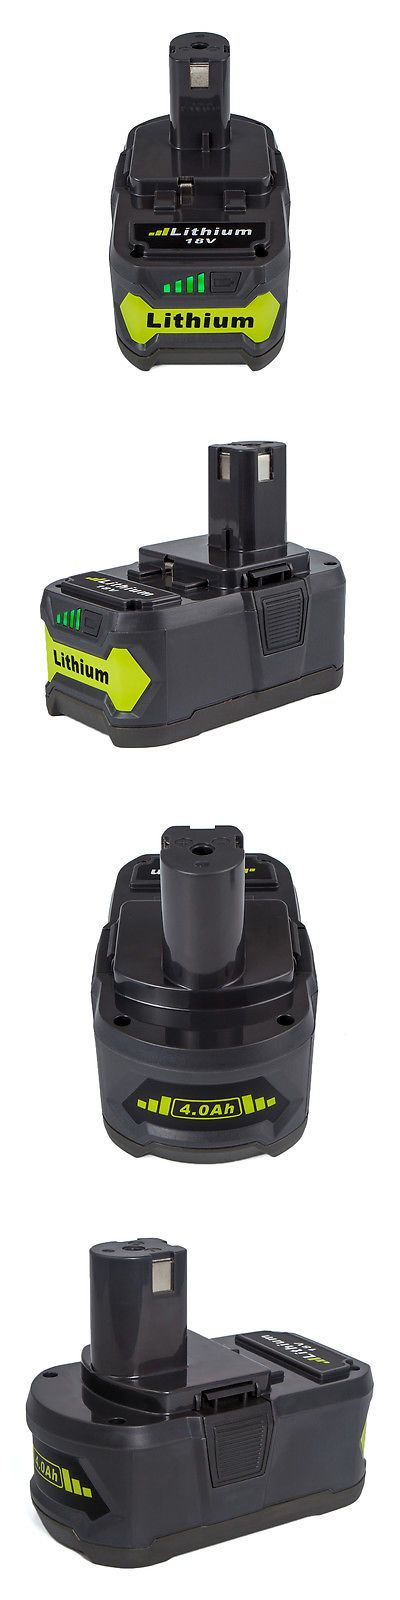 Batteries and Chargers 122840: New!!For P108 Ryobi 18 Volt 18V One Plus Lithium Ion High Capacity Battery 4.0Ah -> BUY IT NOW ONLY: $32.39 on eBay!